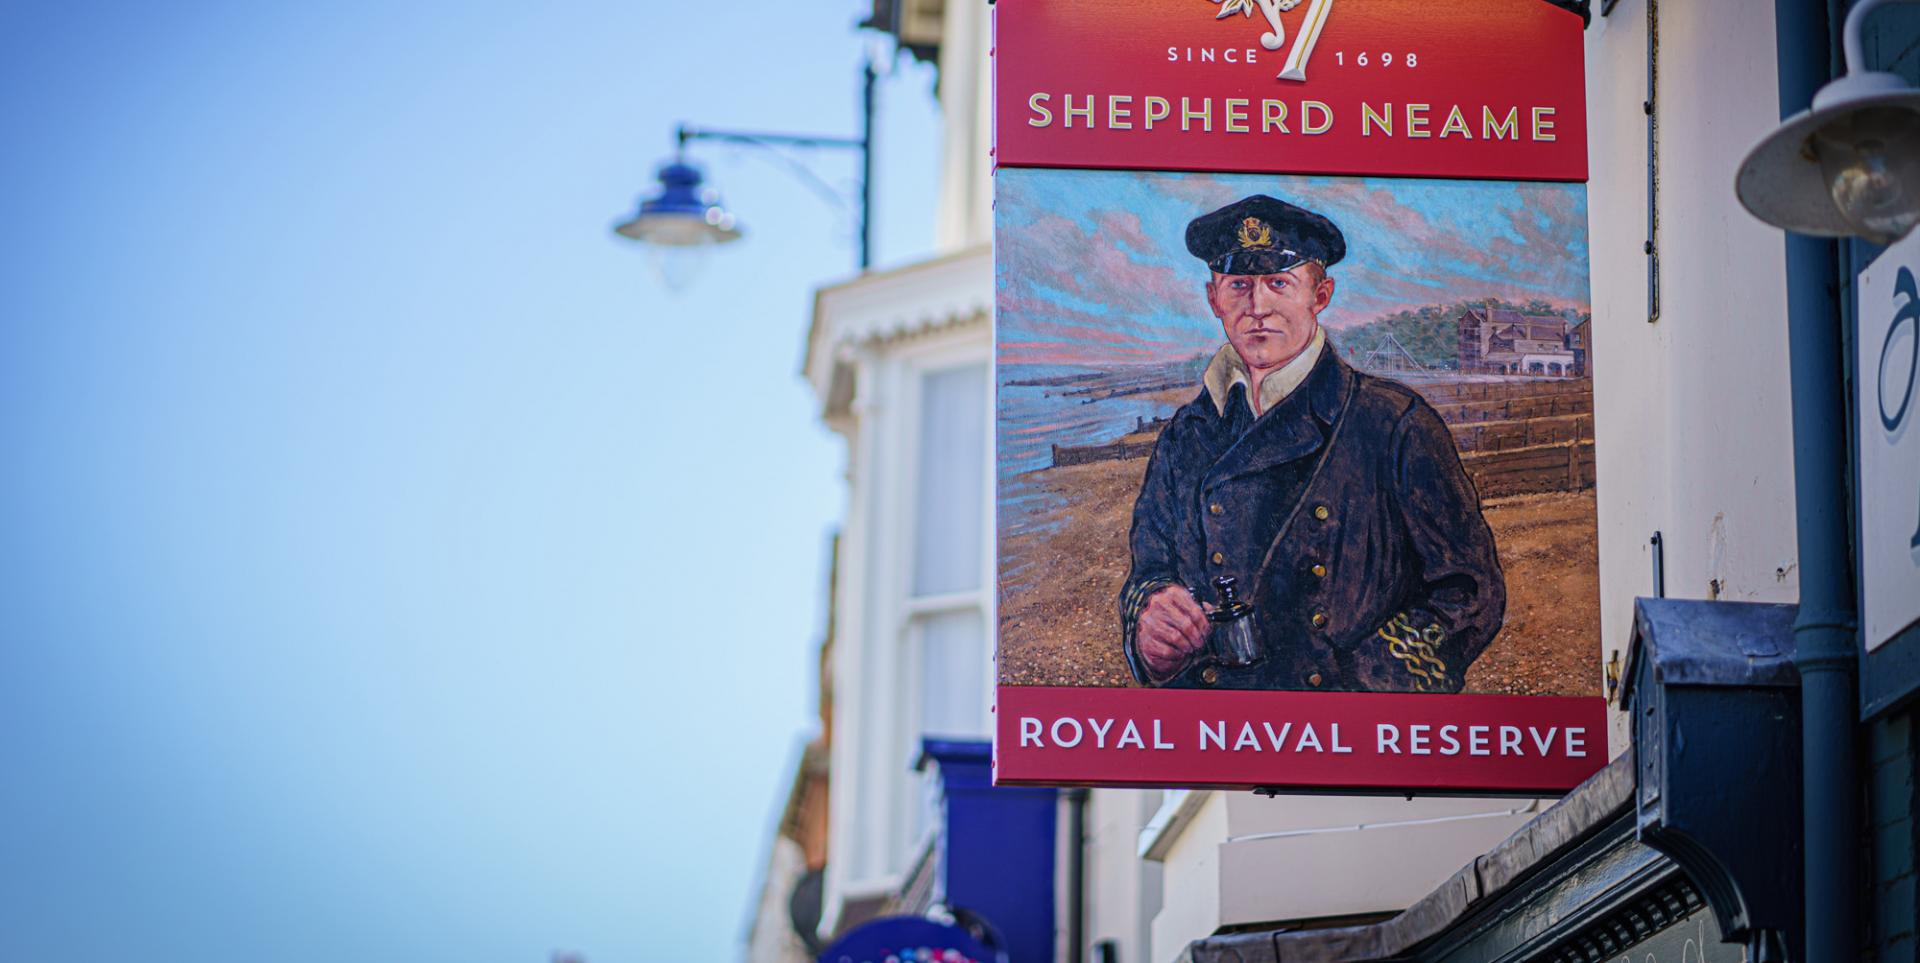 Royal Naval Reserve, Whitstable